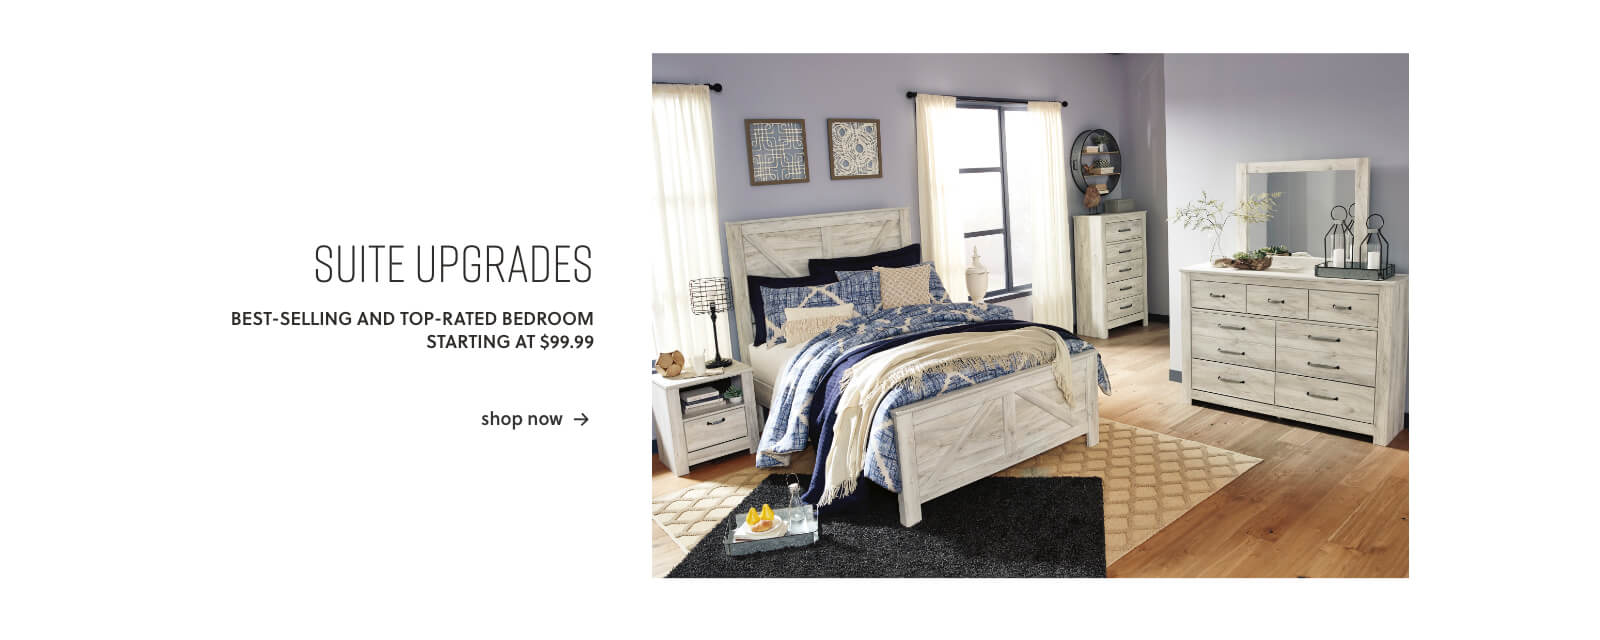 Best Selling and Top-Rated Bedrooms